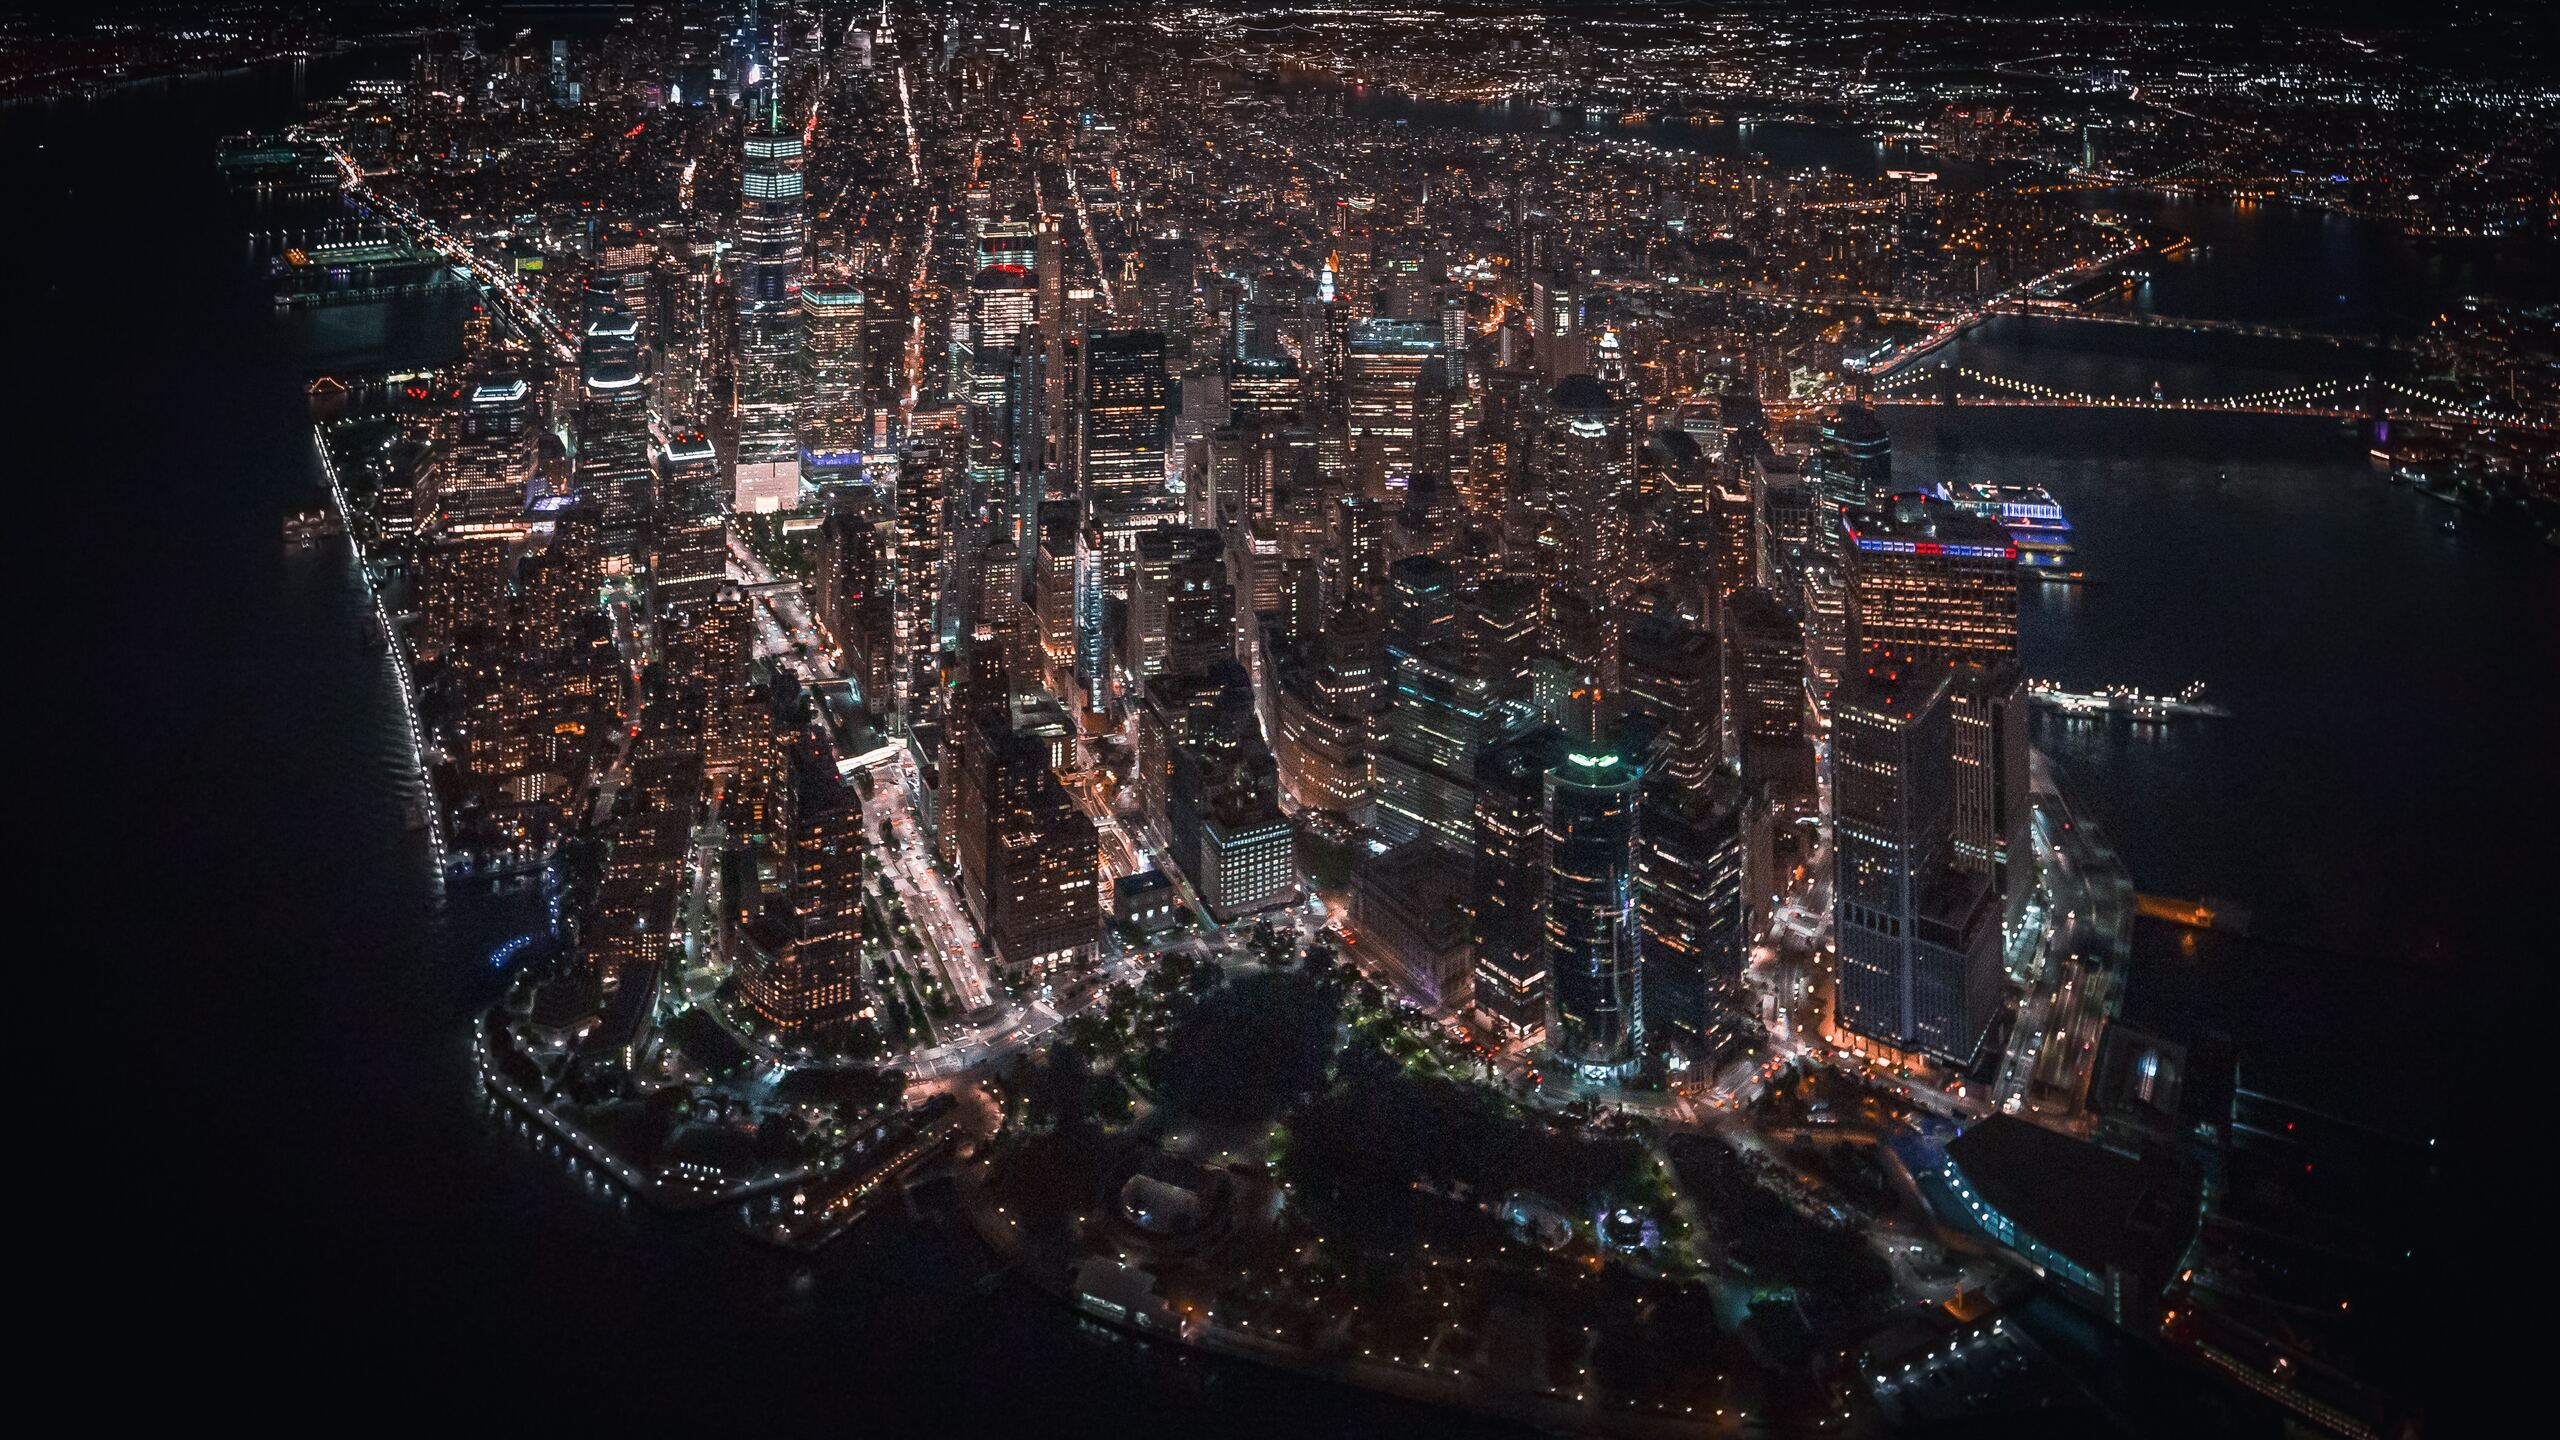 nyc-downtown-helicopter-view-4k-7r.jpg